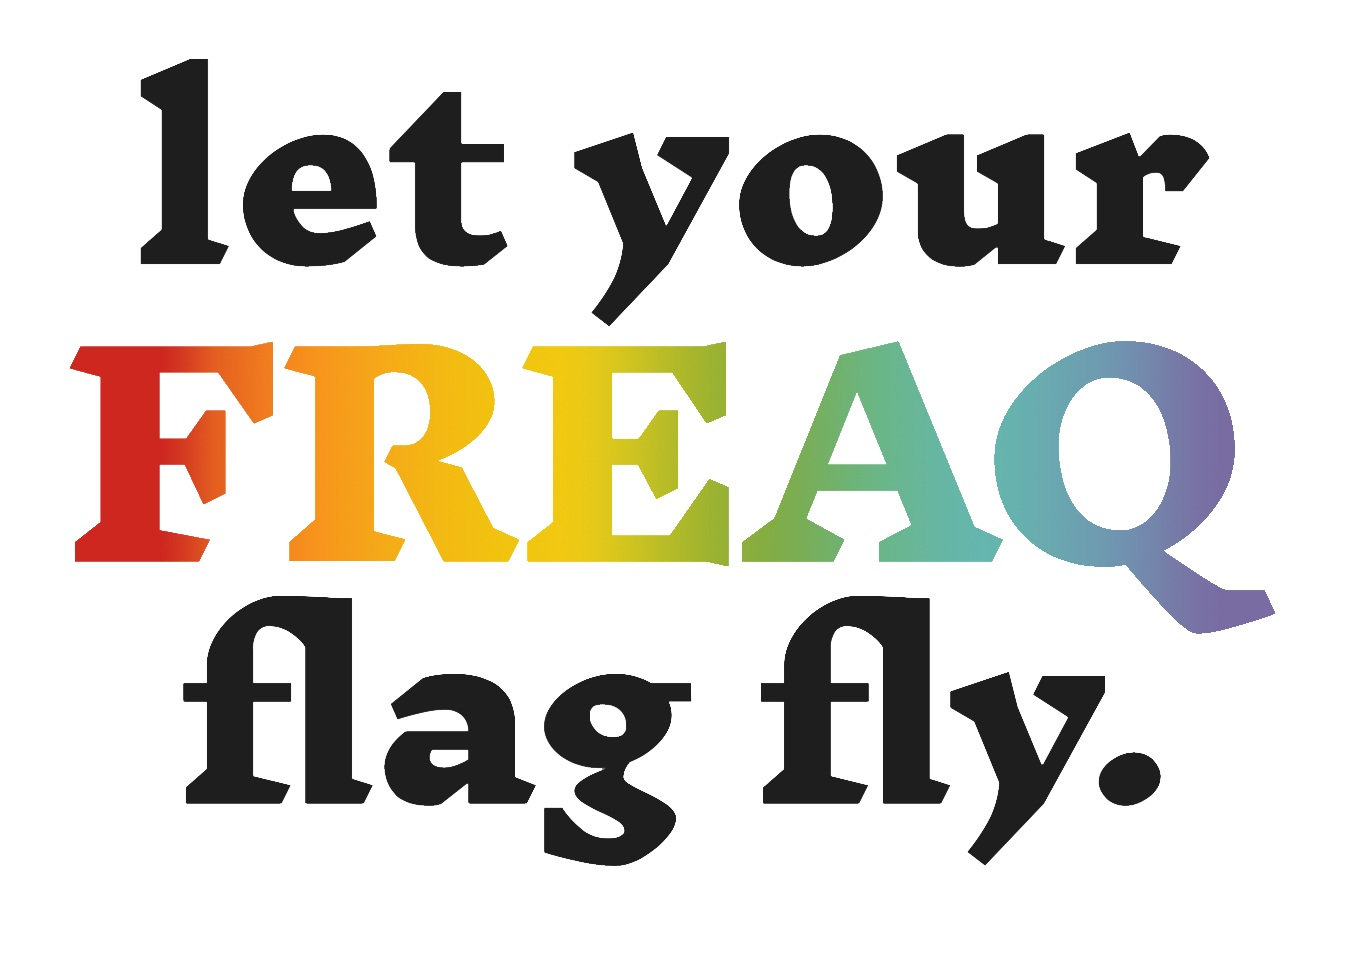 let+your+freaq+flag+fly+copy.jpg